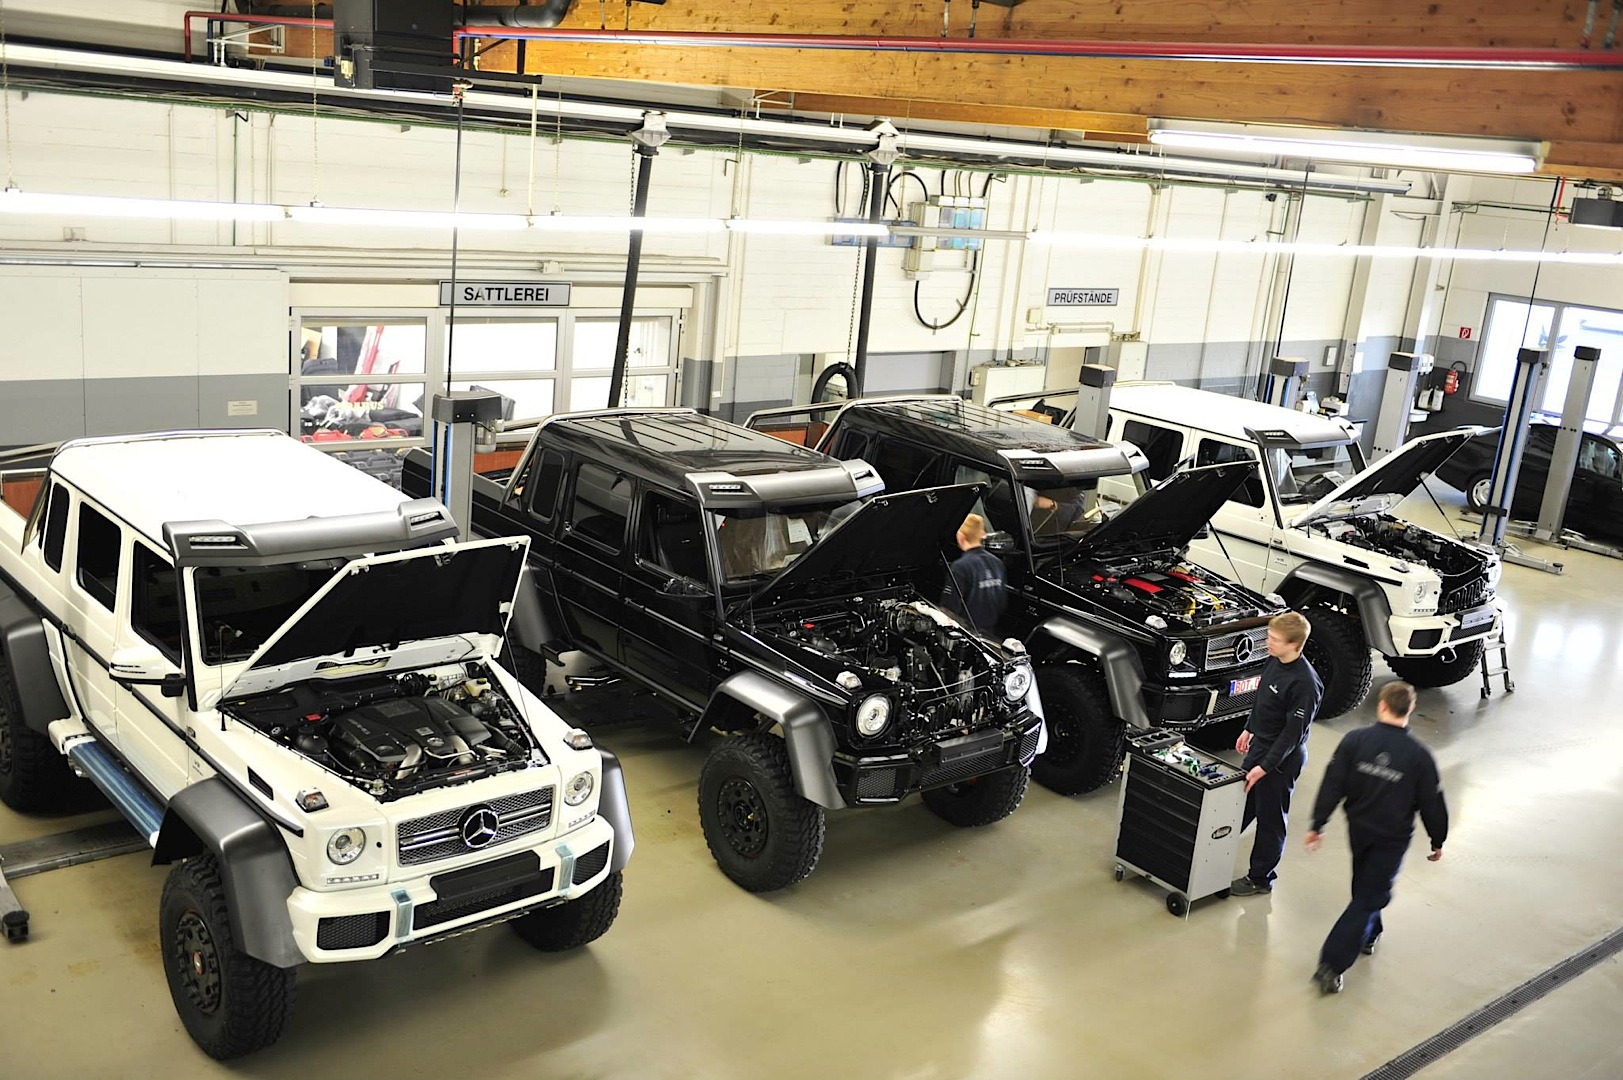 five g 63 amg 6x6 cars say aaah at brabus autoevolution. Black Bedroom Furniture Sets. Home Design Ideas